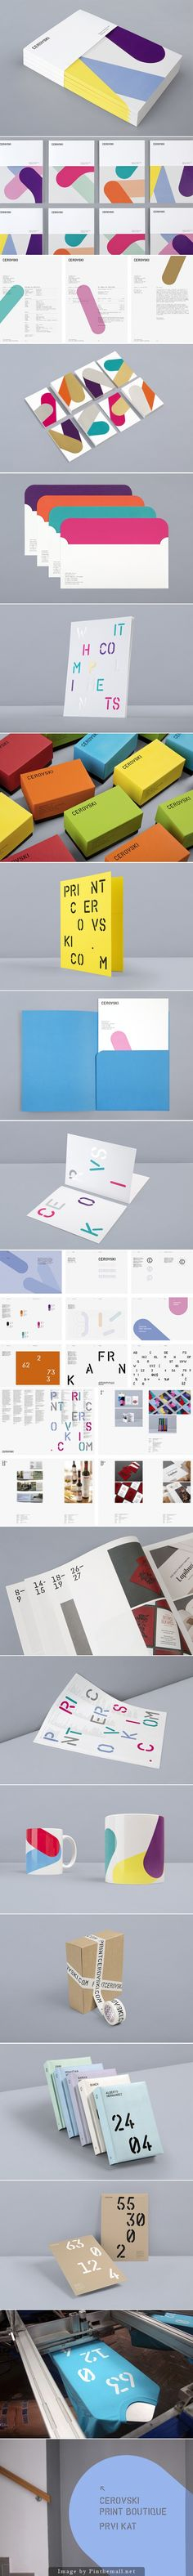 Cerovsky Print Boutique Identity by Bunch